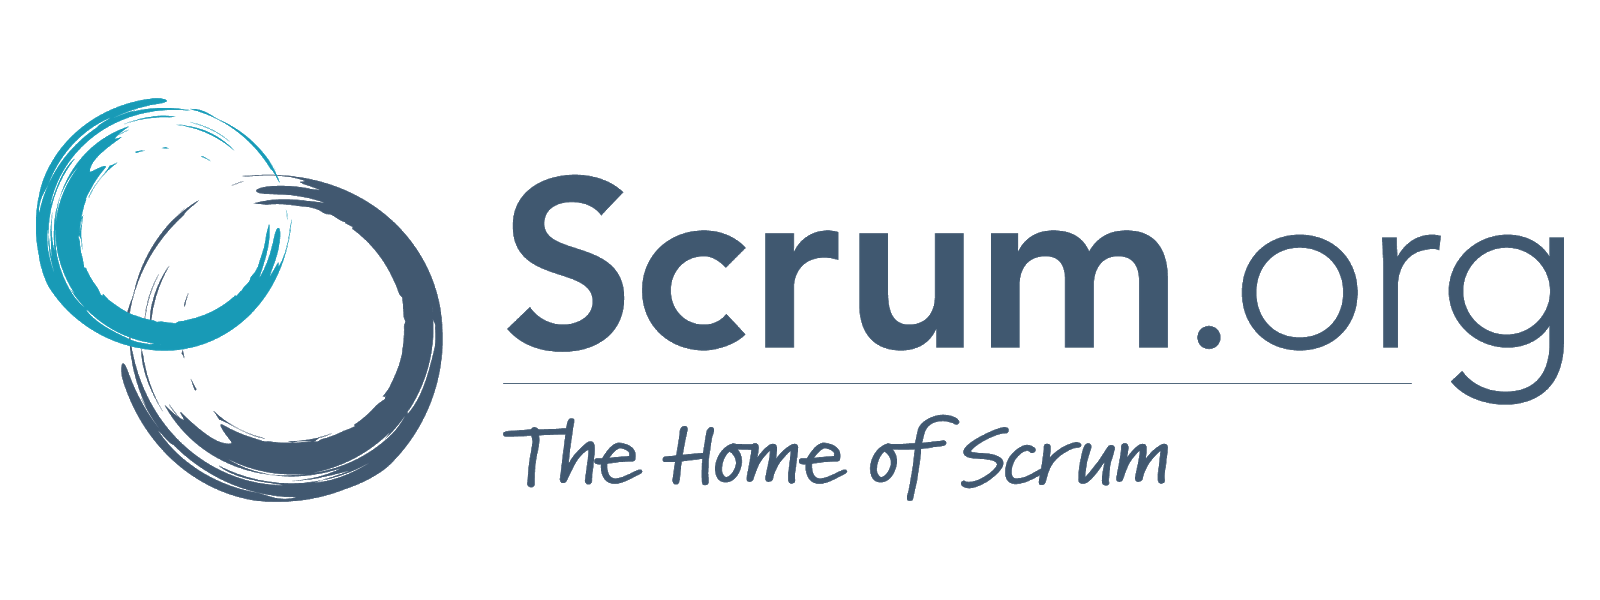 scrum.org profile